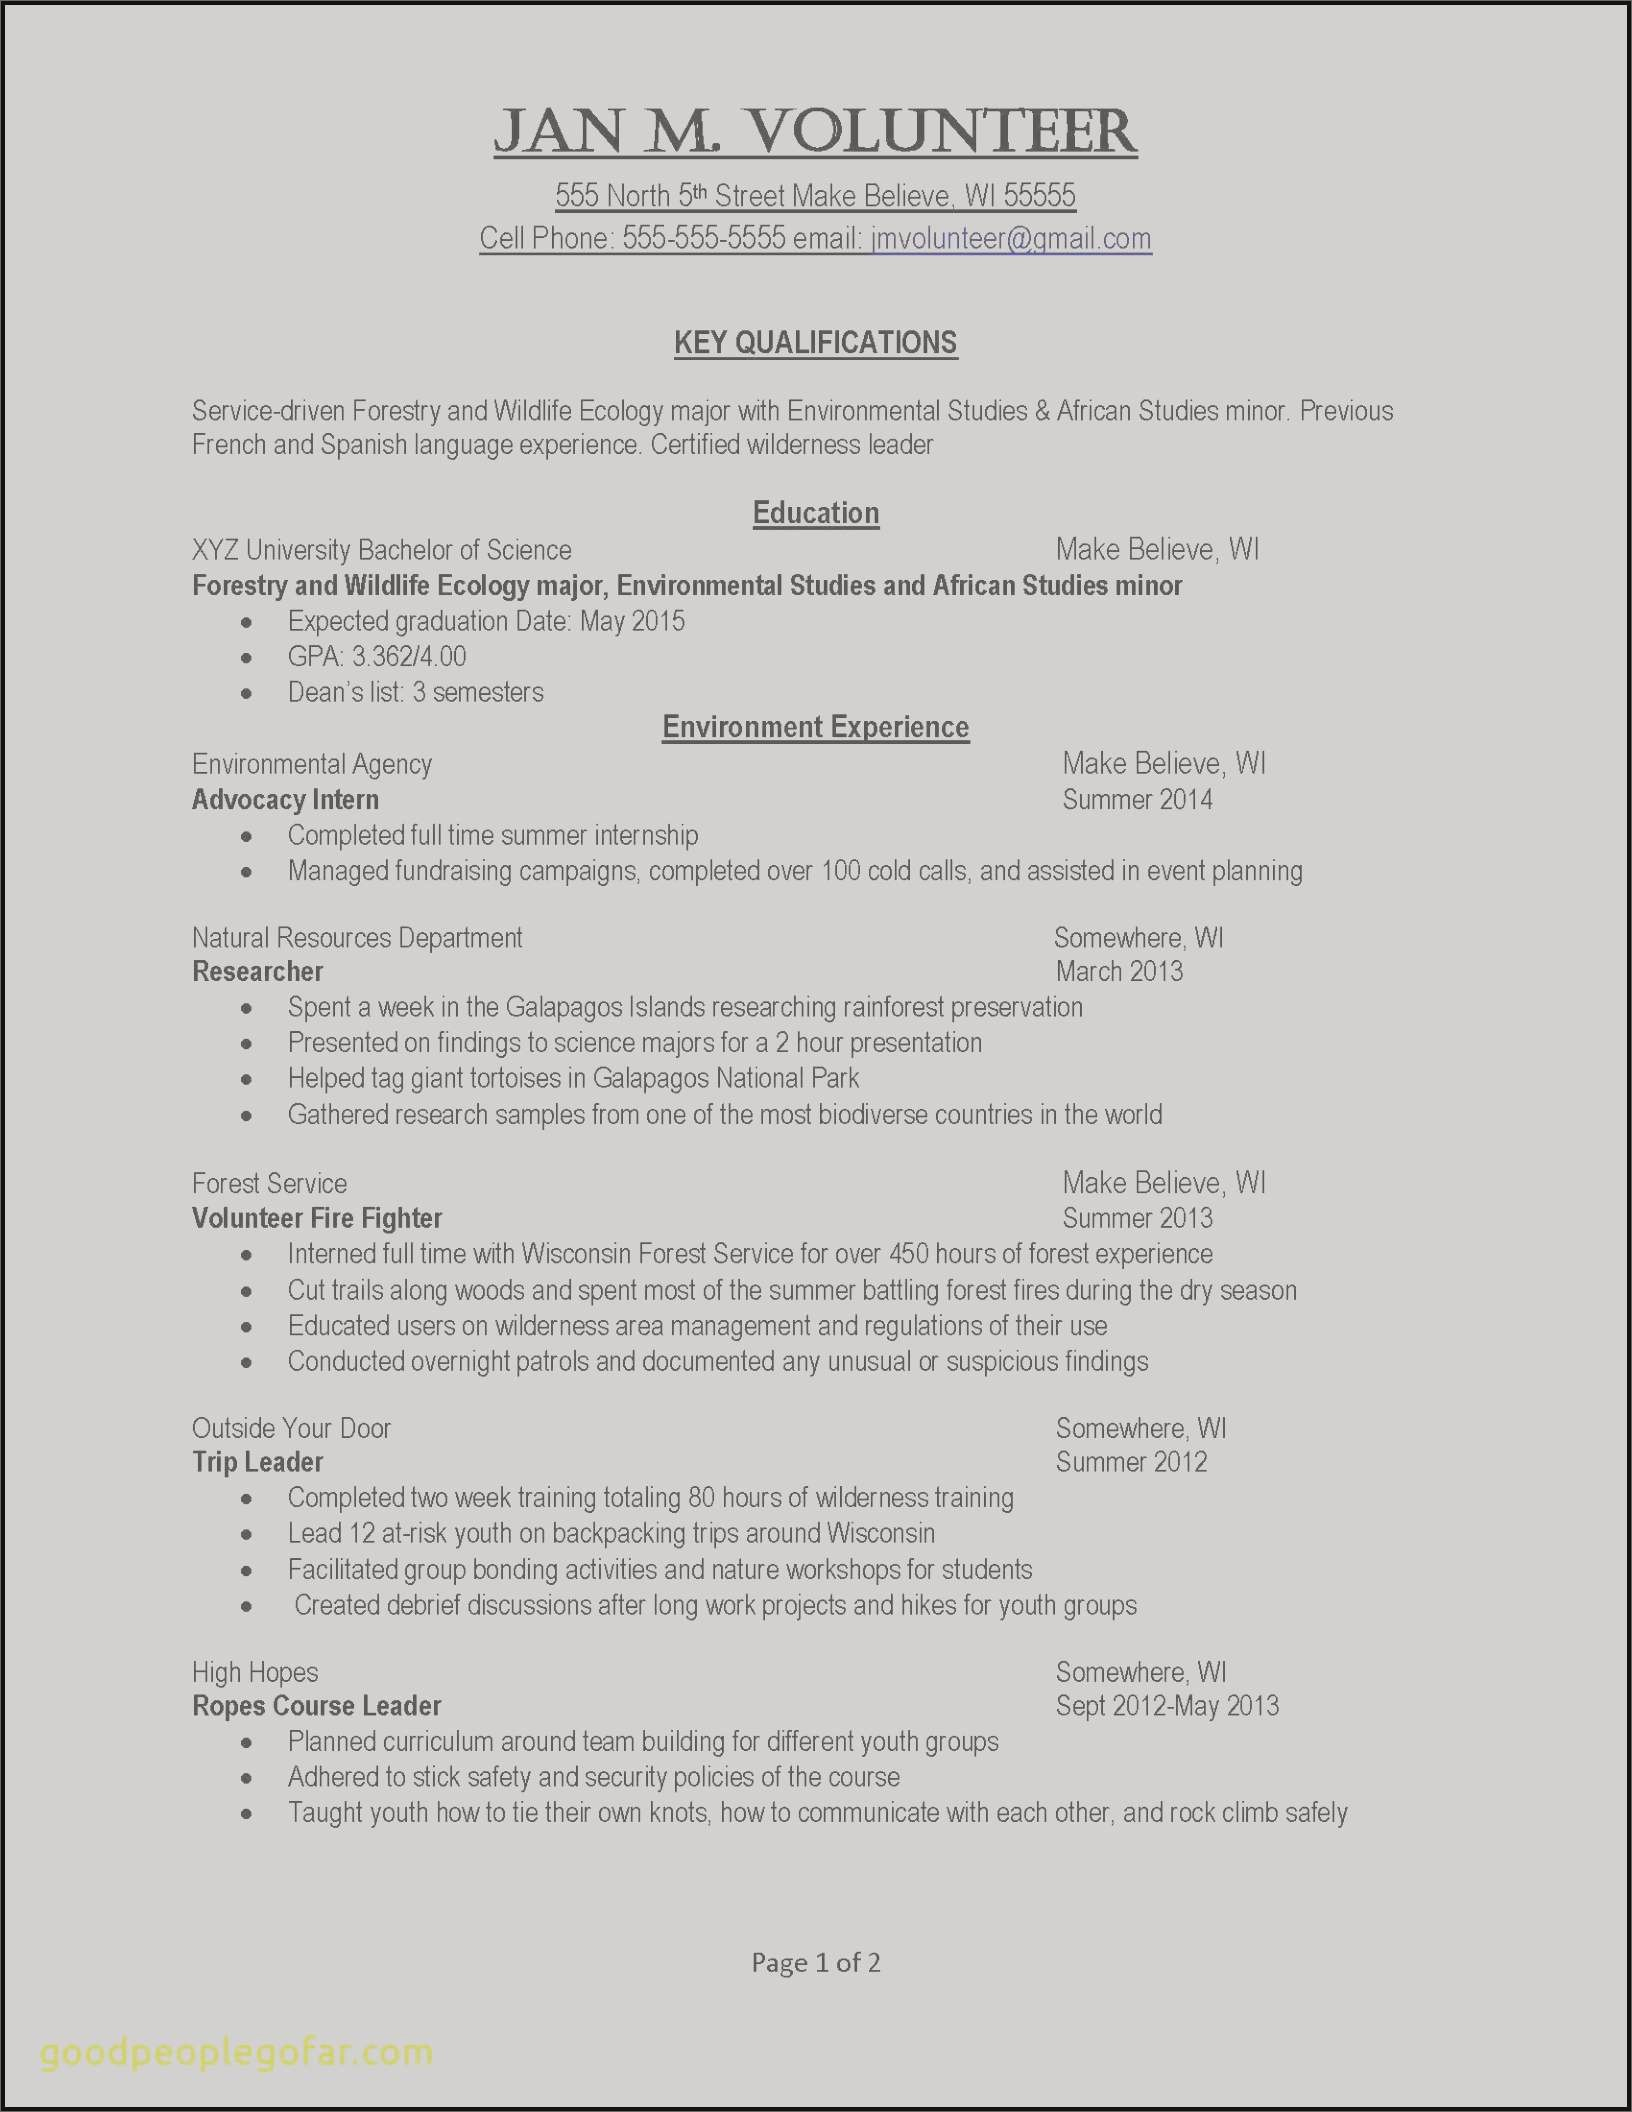 msw resume template Collection-Resume For Social Worker New Usajobs Resume Federal Job Resume New Ecologist Resume 0d Aurelianmg 11-r